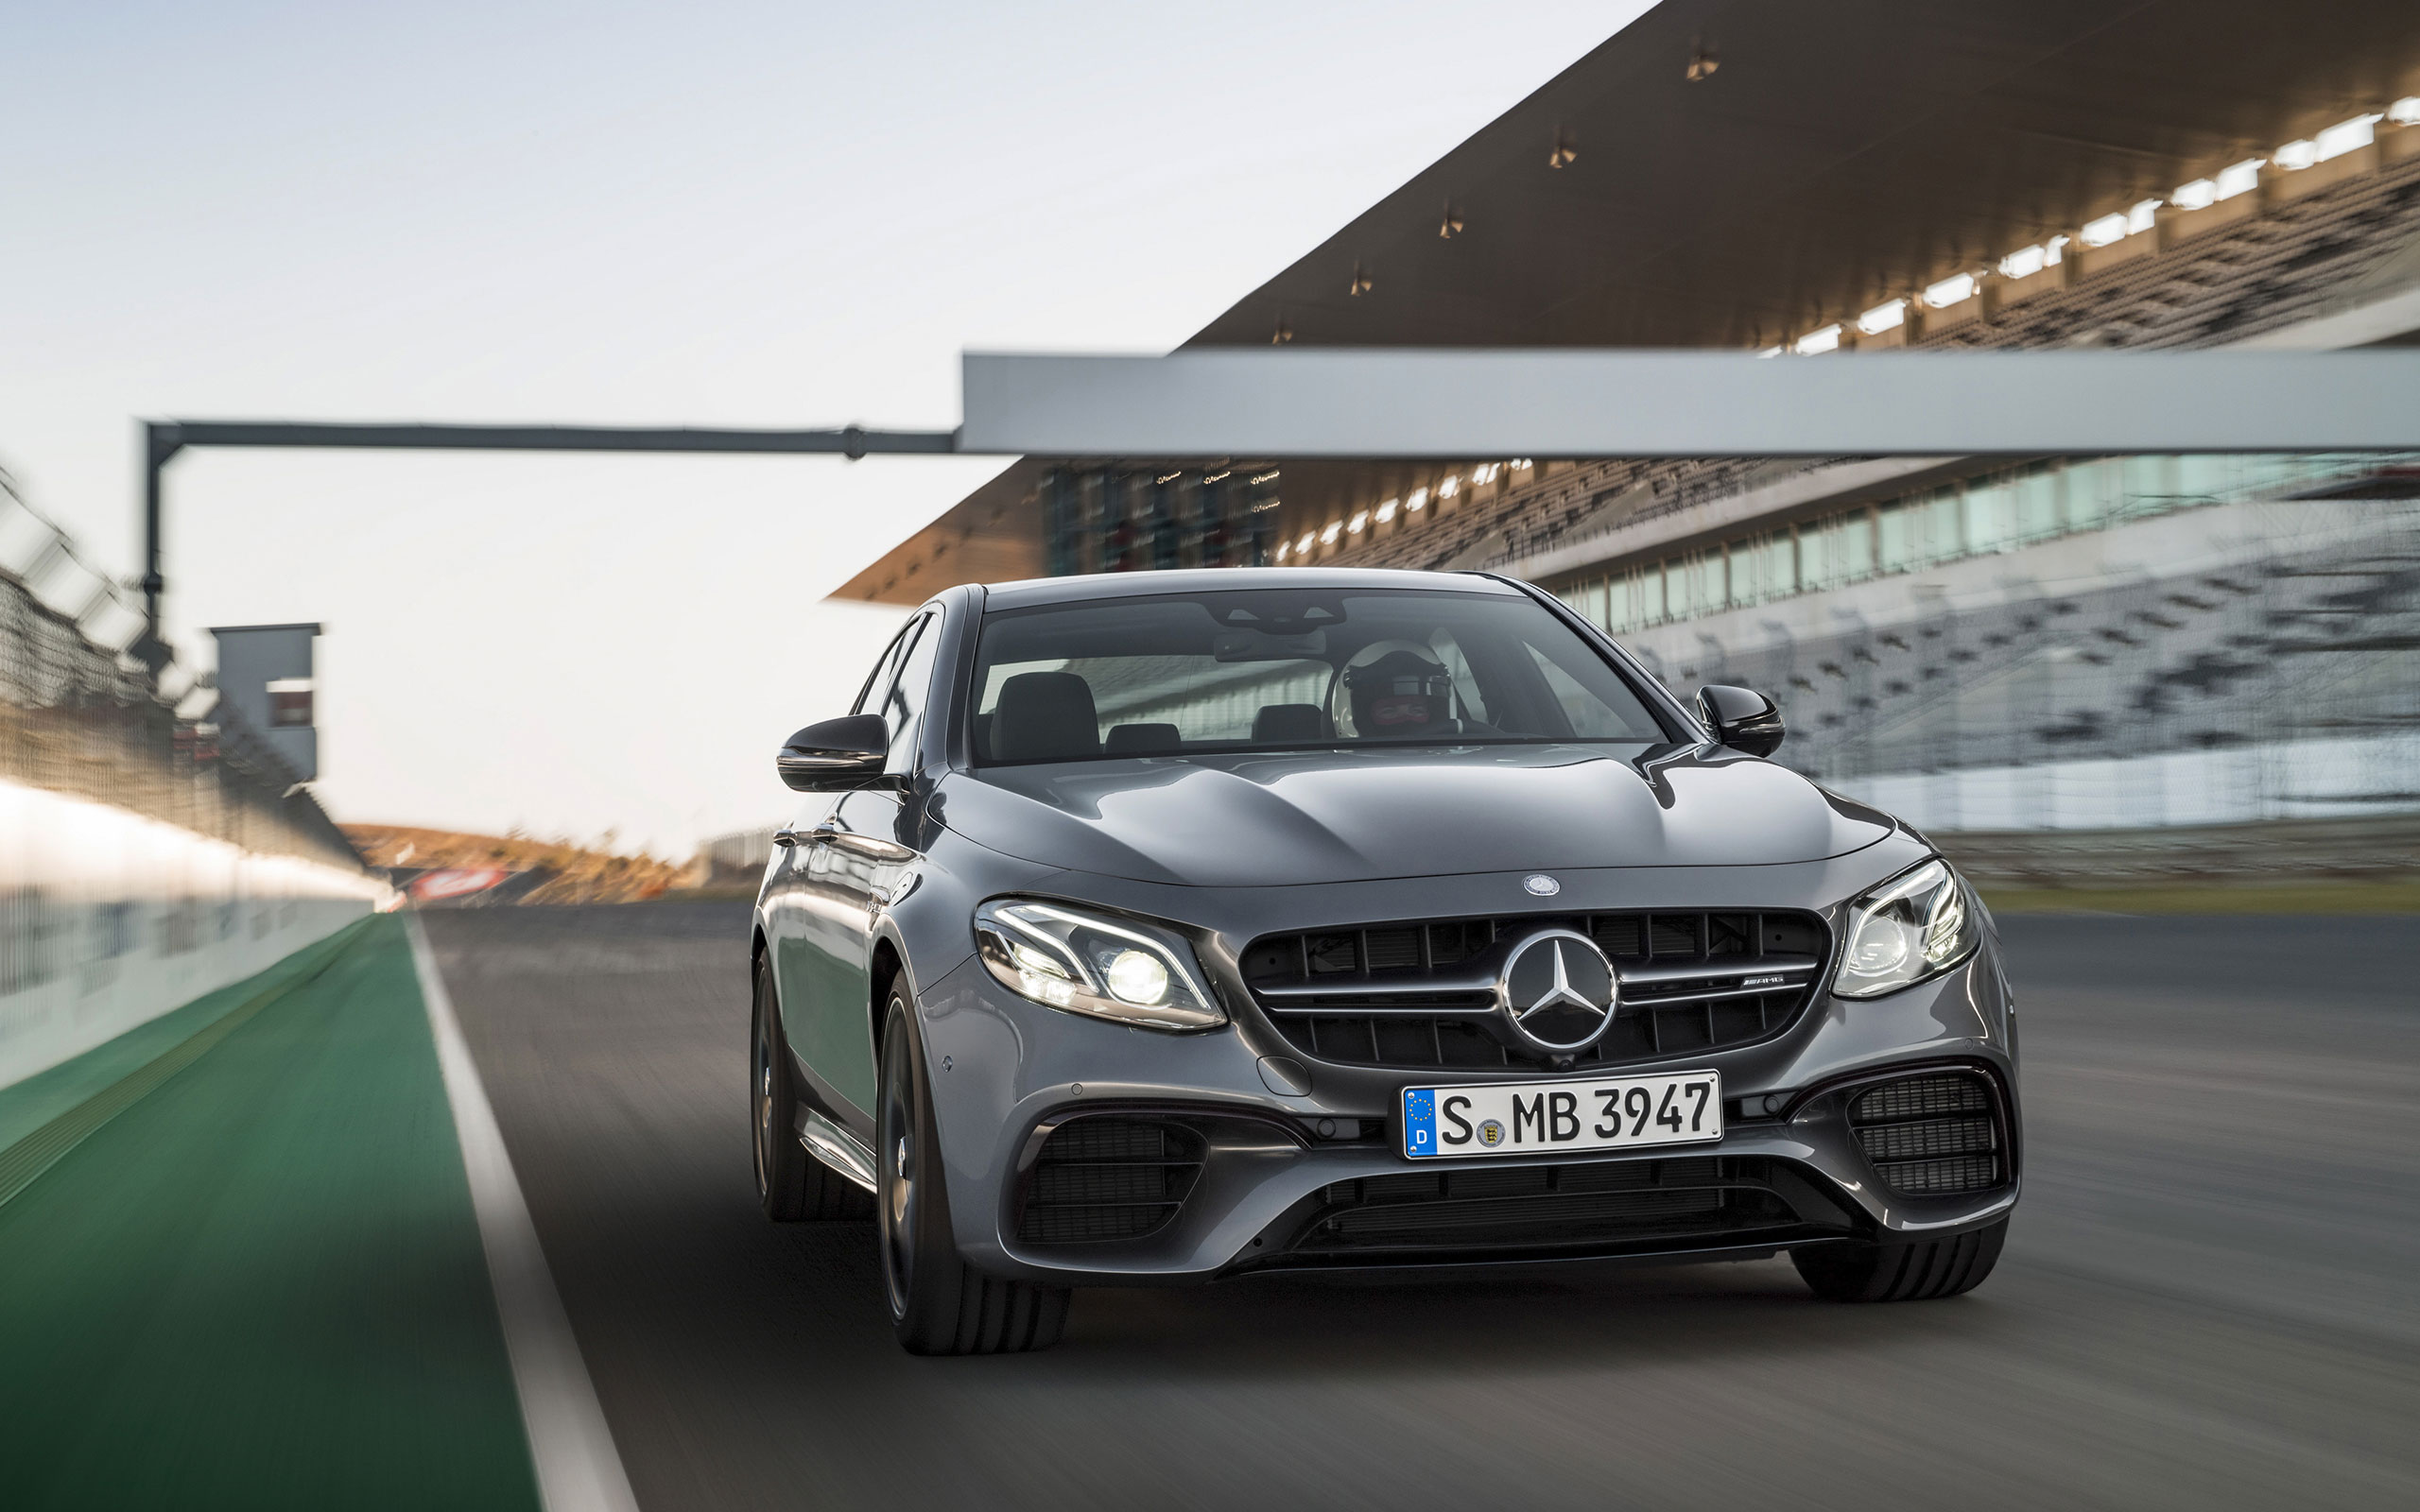 https://assets.mbusa.com/vcm/MB/DigitalAssets/FutureModels/Responsive/2018_E63_SEDANS/Gallery/2017-E-SEDAN-63S-AMG-FUTURE-GALLERY-003-WR-D.jpg